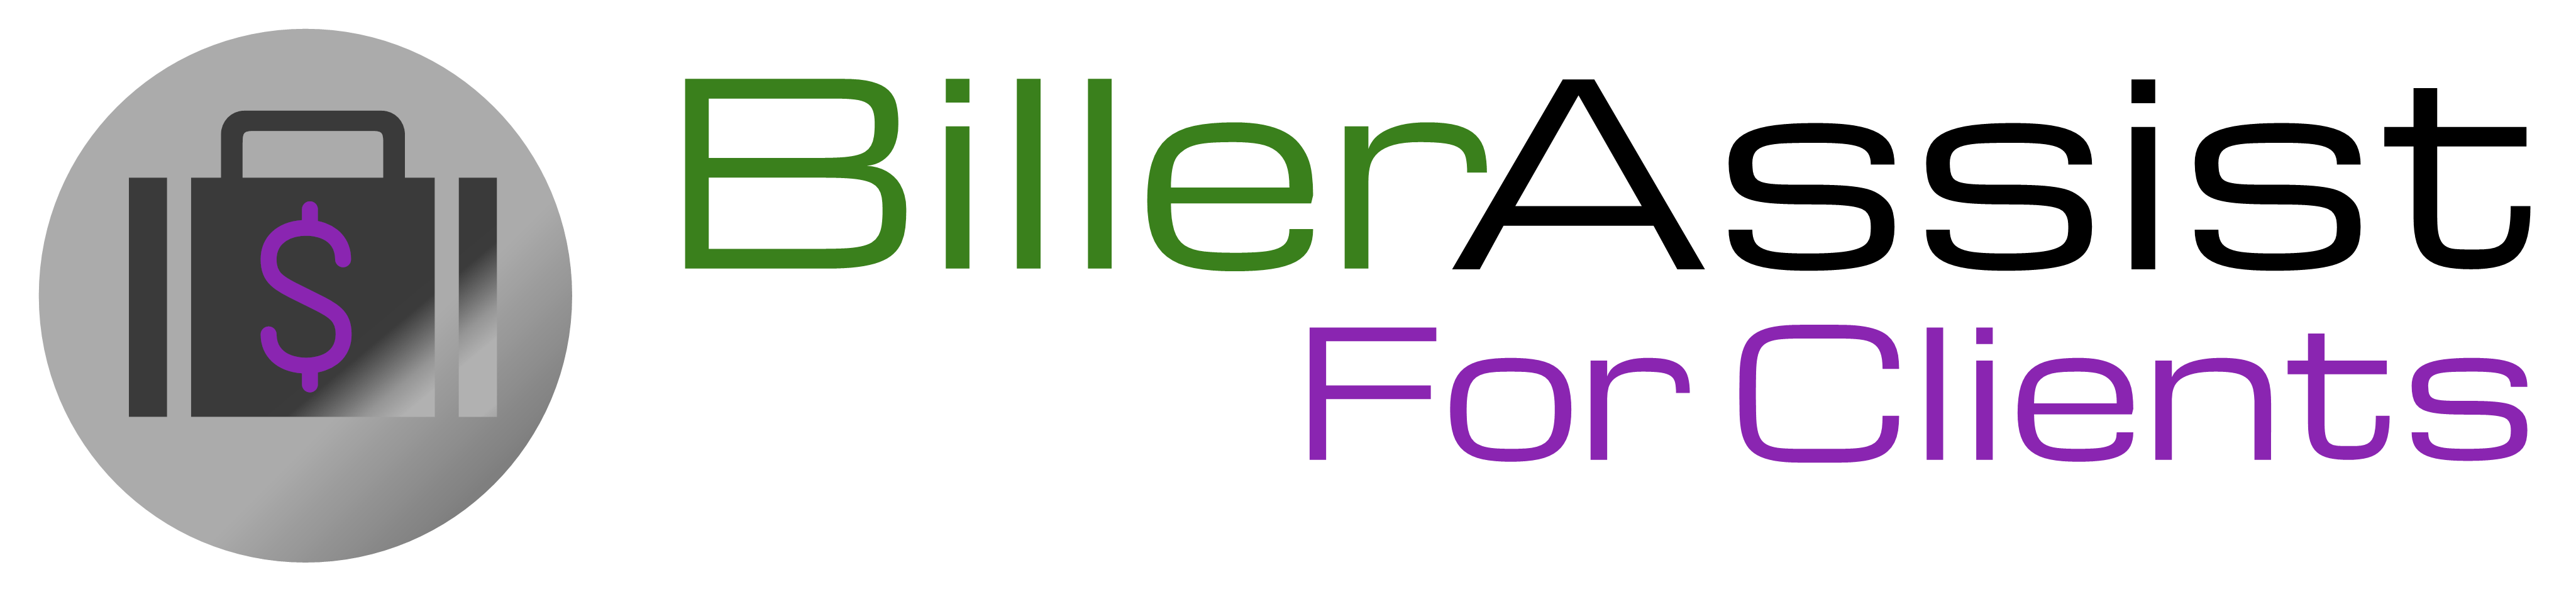 Attorney Billing Software & Automation for Law Firms | BillerAssist for Clients